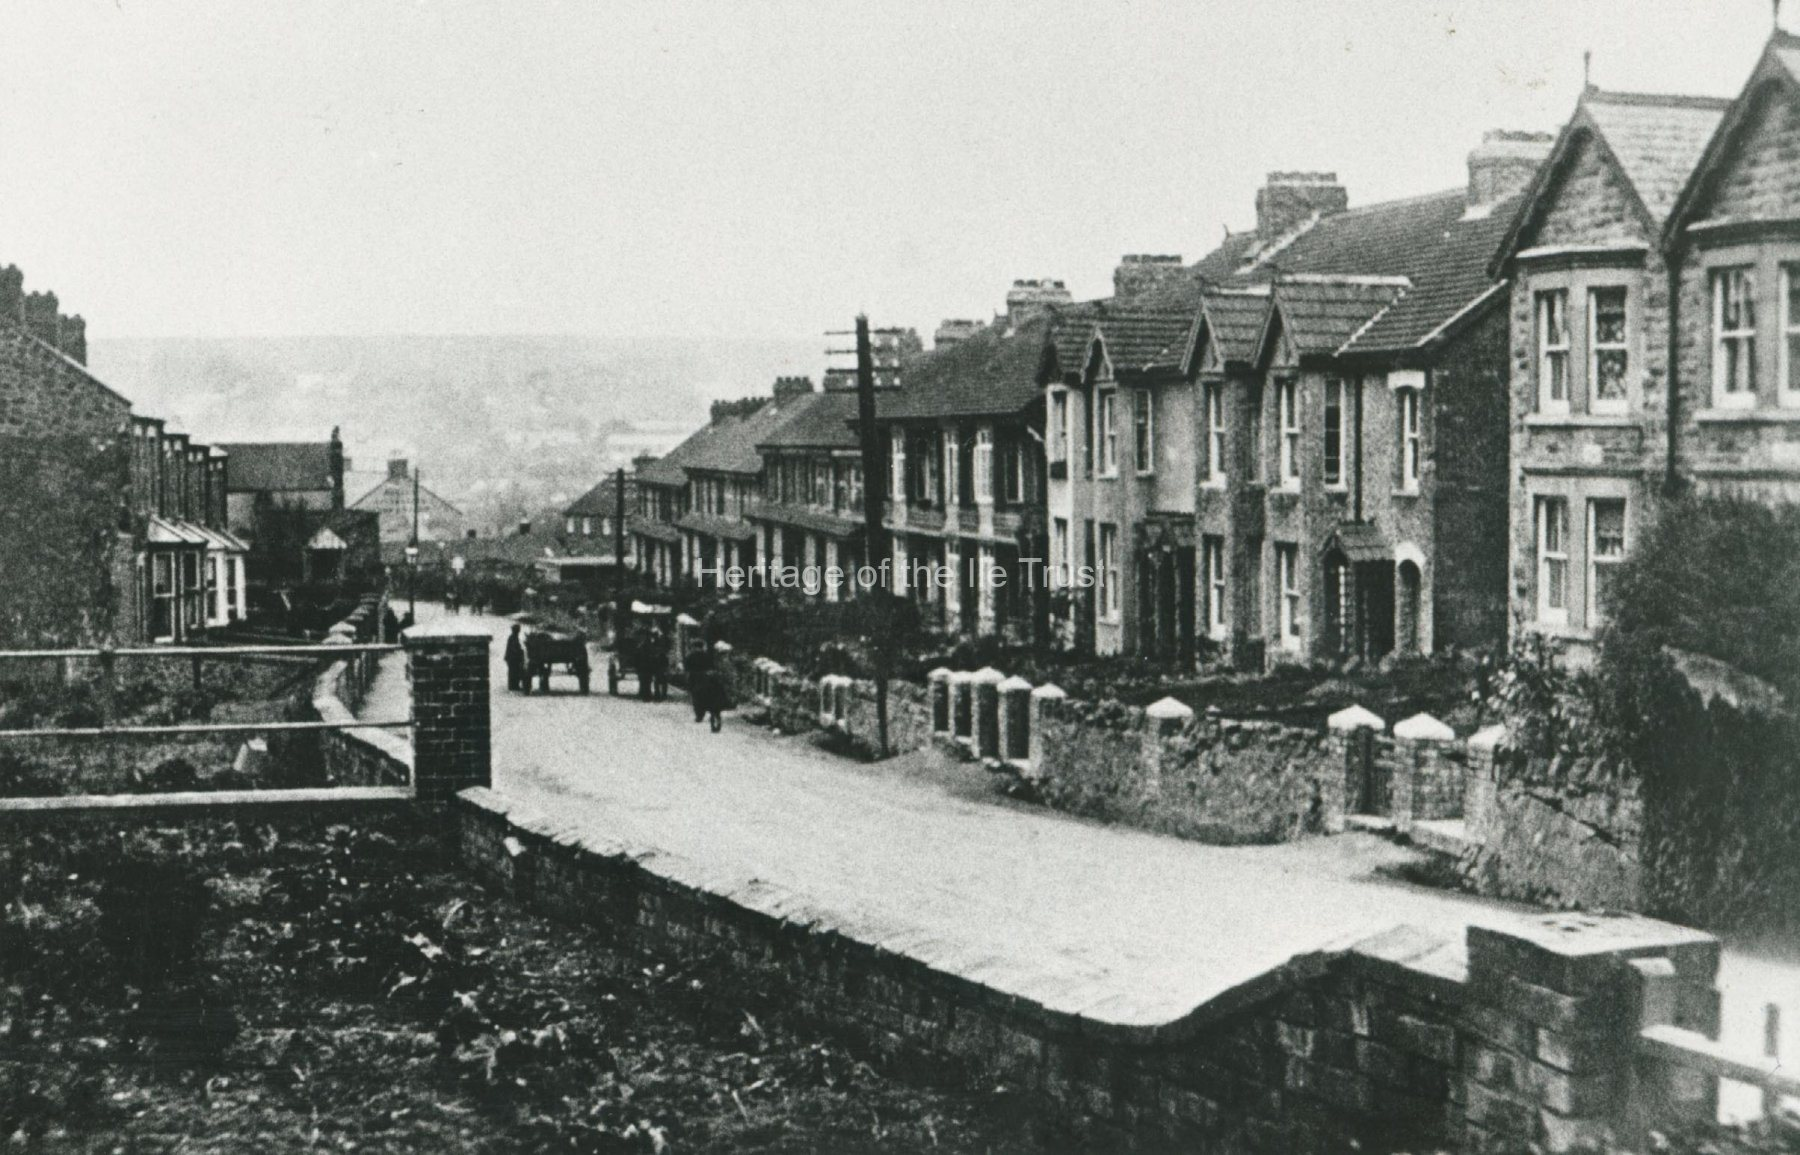 001000 View looking down Listers Hill c1914